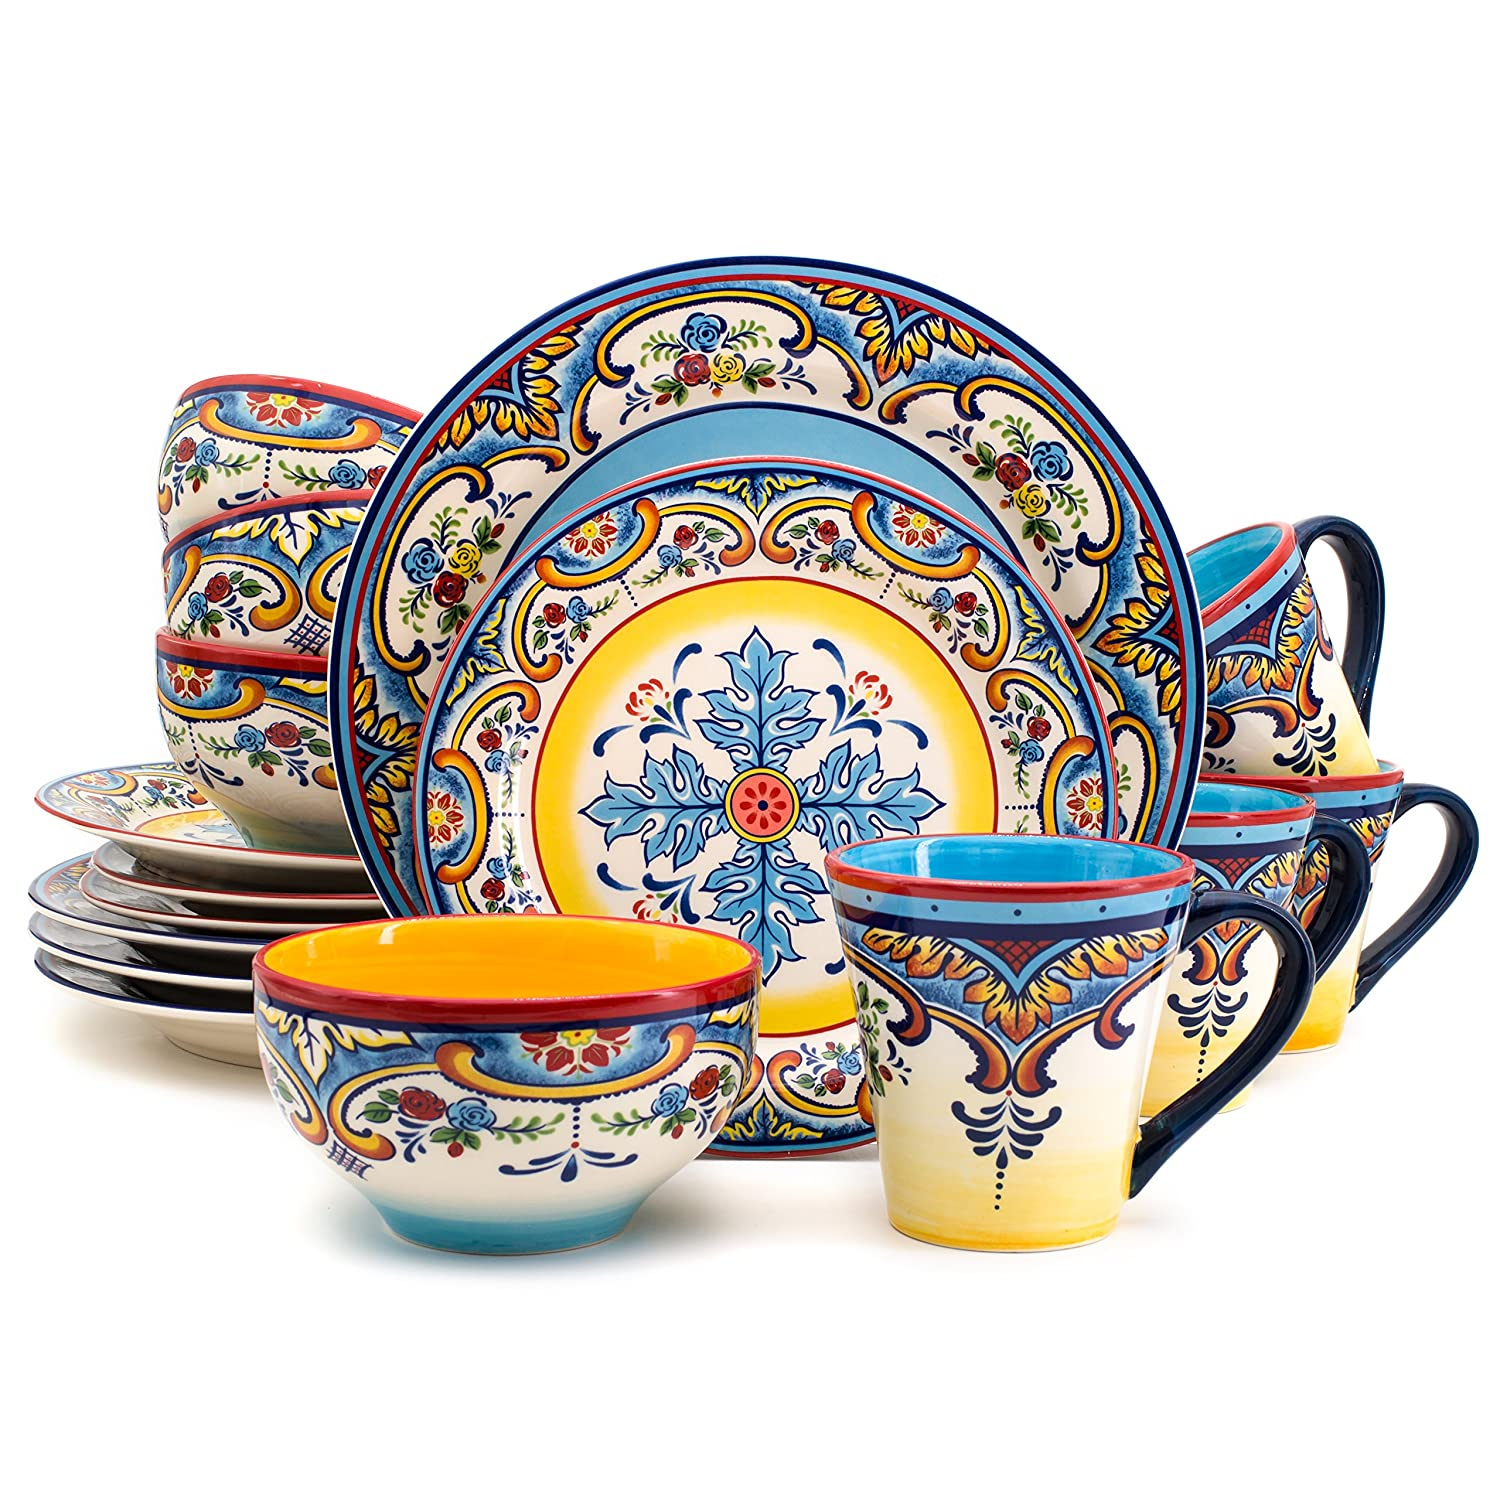 Euro Ceramica Inc. YS-ZB-1001 Zanzibar Collection Vibrant Ceramic Earthenware Dinnerware Set 16 Piece Spanish/Mexican Floral Design, Multicolor, Service for 4